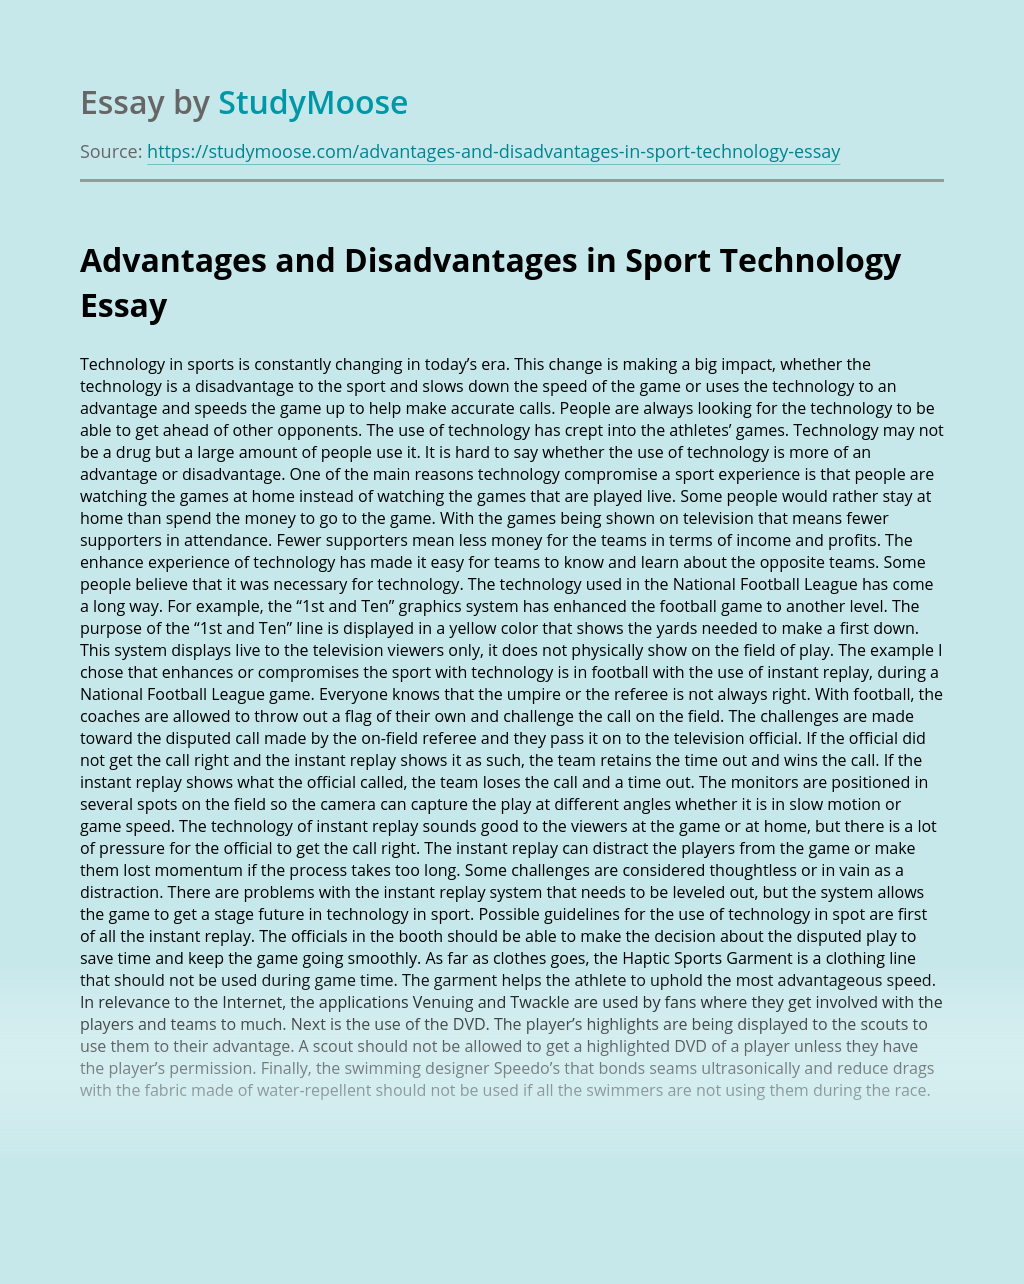 Advantages and Disadvantages in Sport Technology